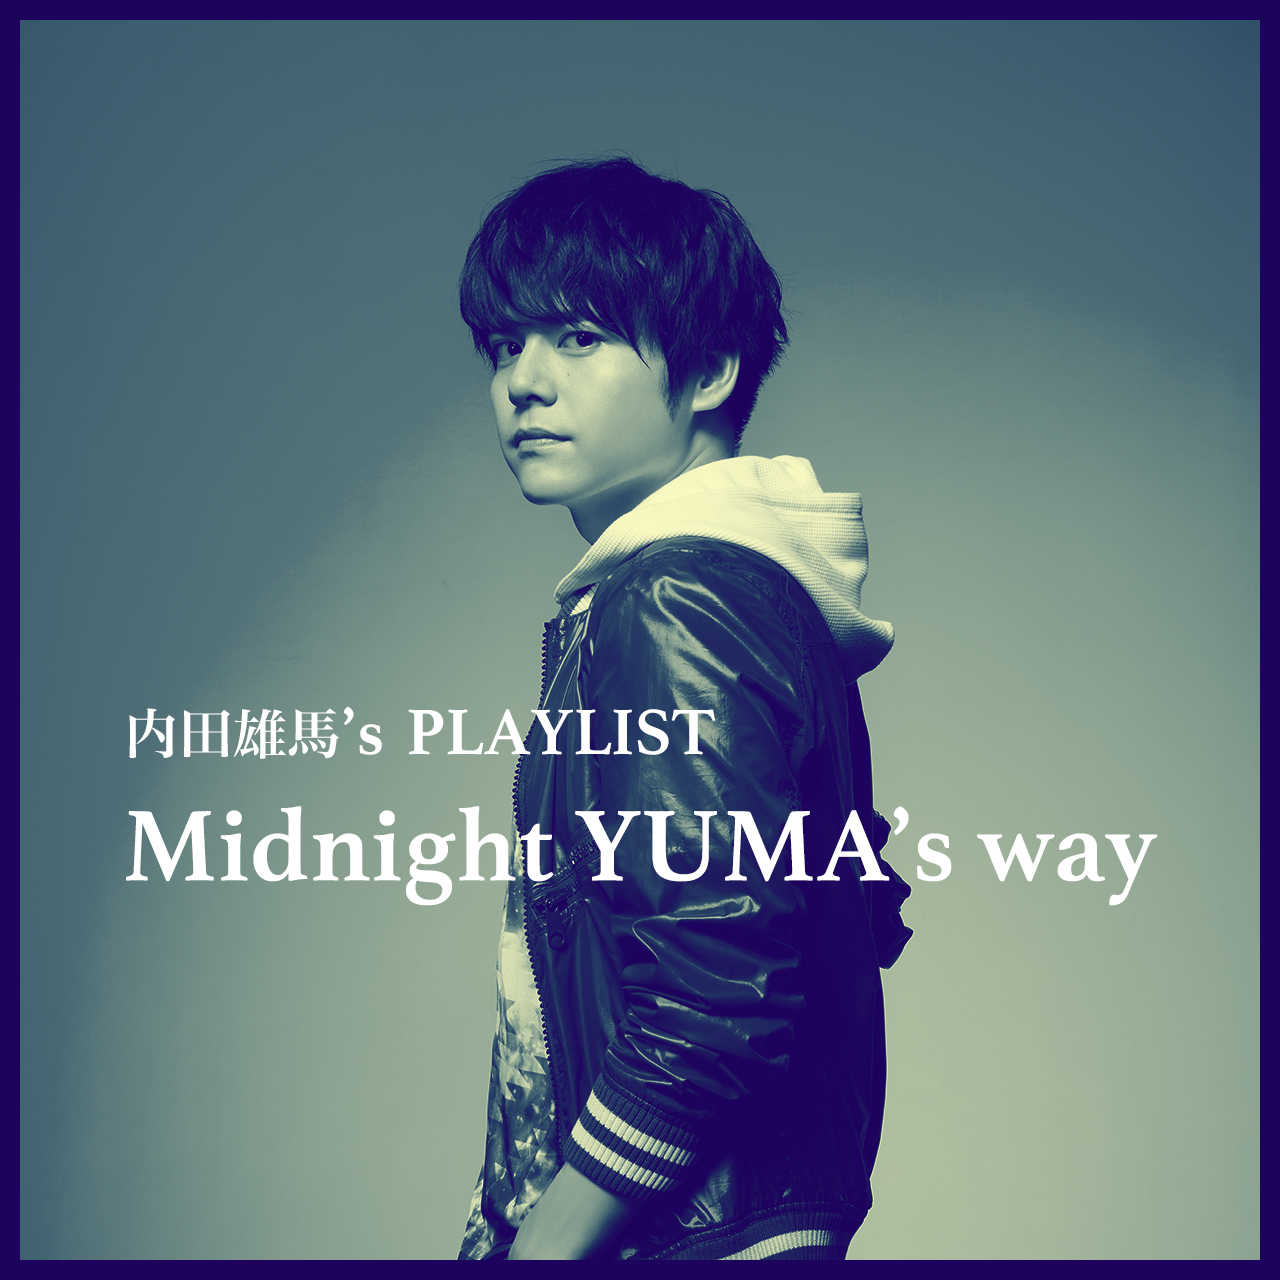 「Midnight YUMA's way」